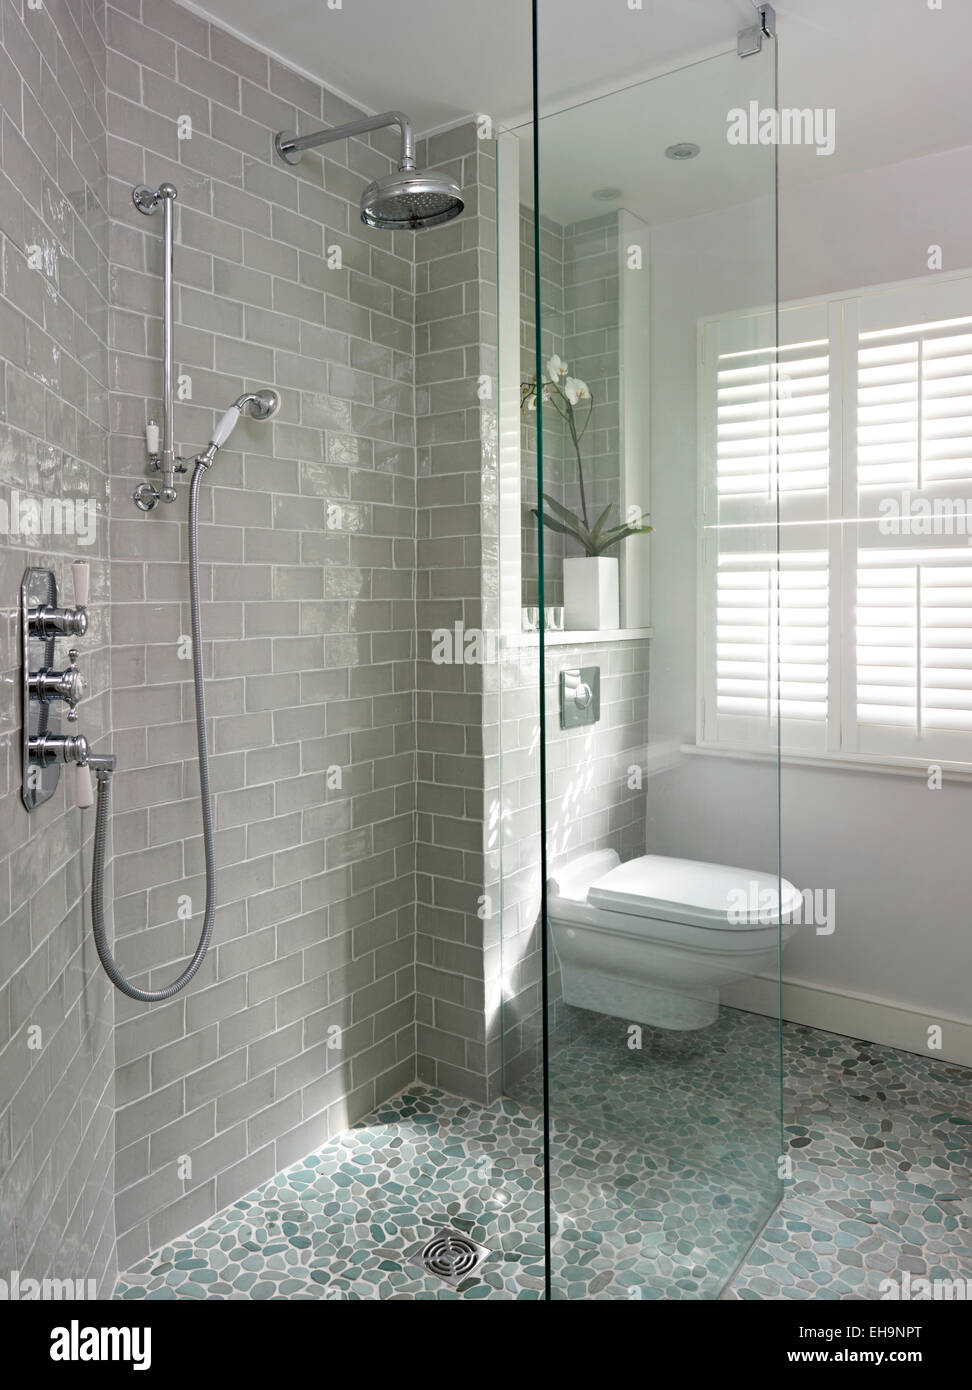 Beige Tiled Shower Room With Natural Pebble Floor With Toilet In Fernhurst  Road Home, UK